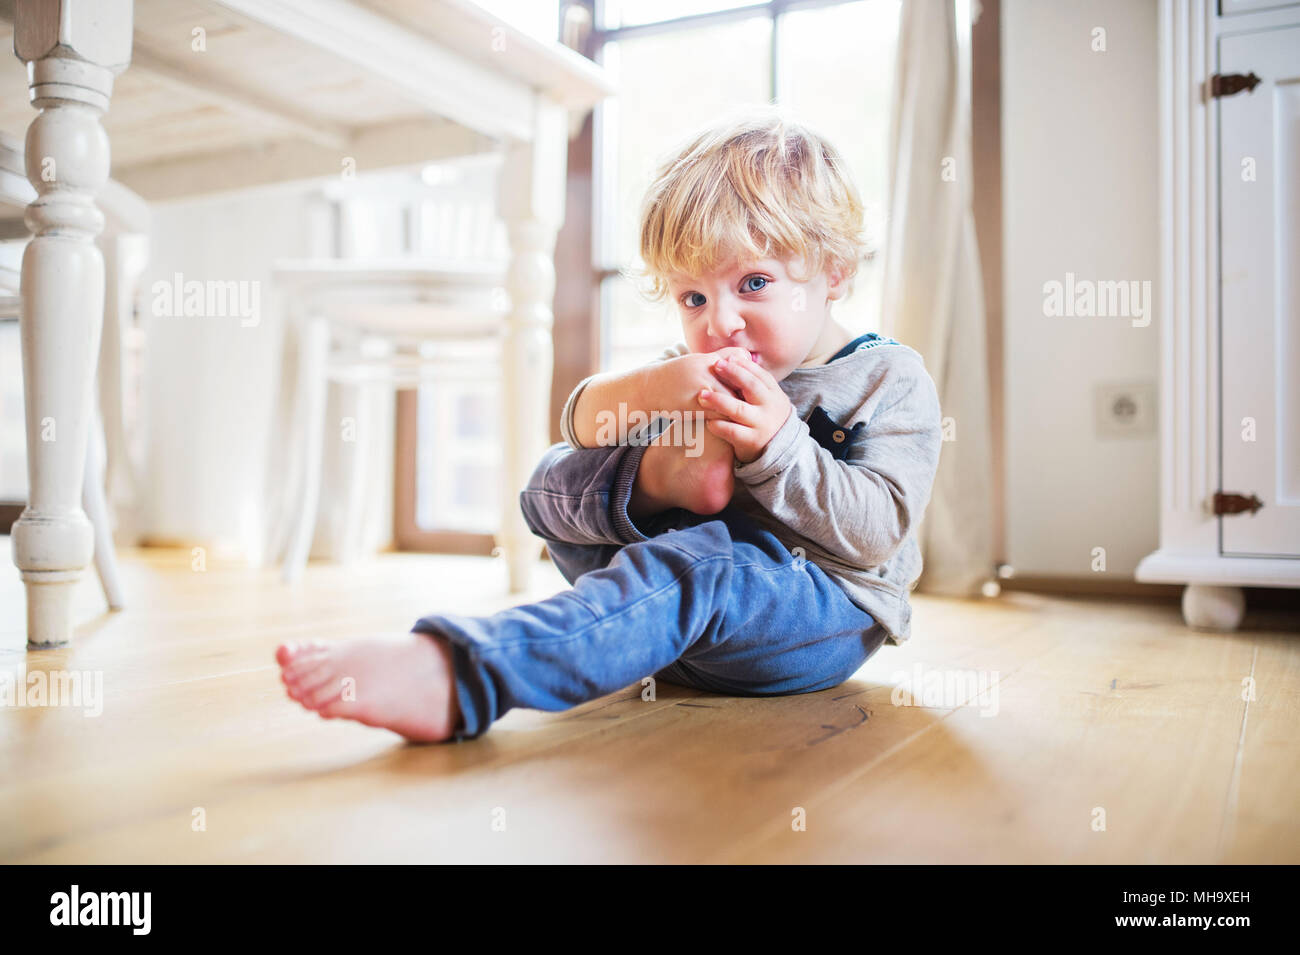 A toddler boy sitting on the floor at home. - Stock Image